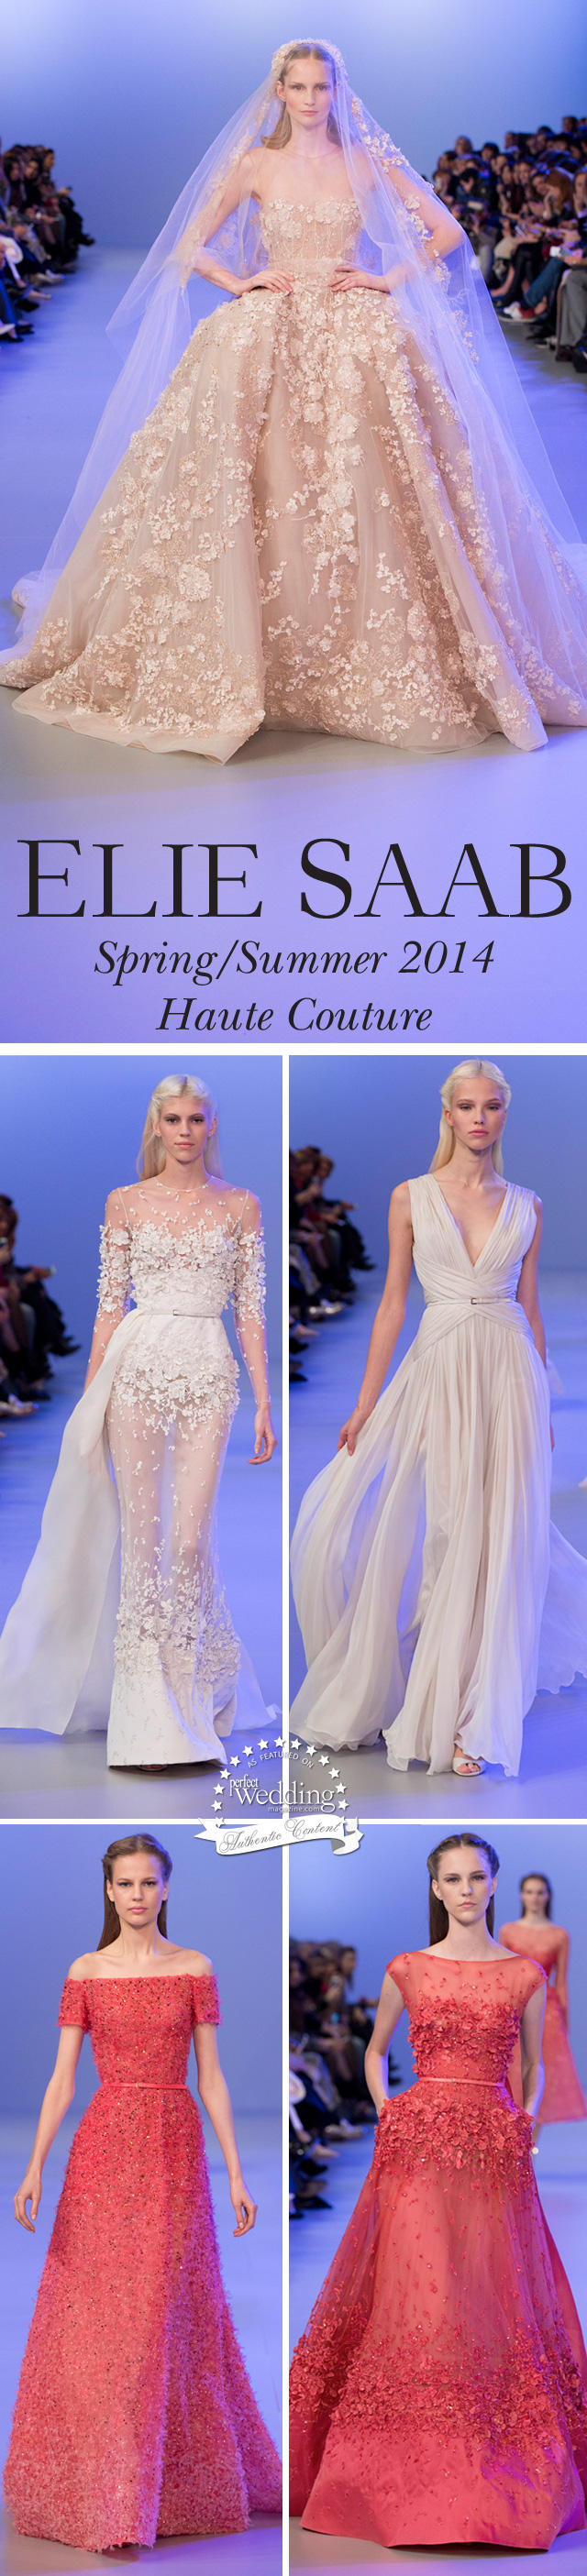 Elie Saab Spring Summer 2014 Haute Couture, Perfect Wedding magazine, Wedding gowns